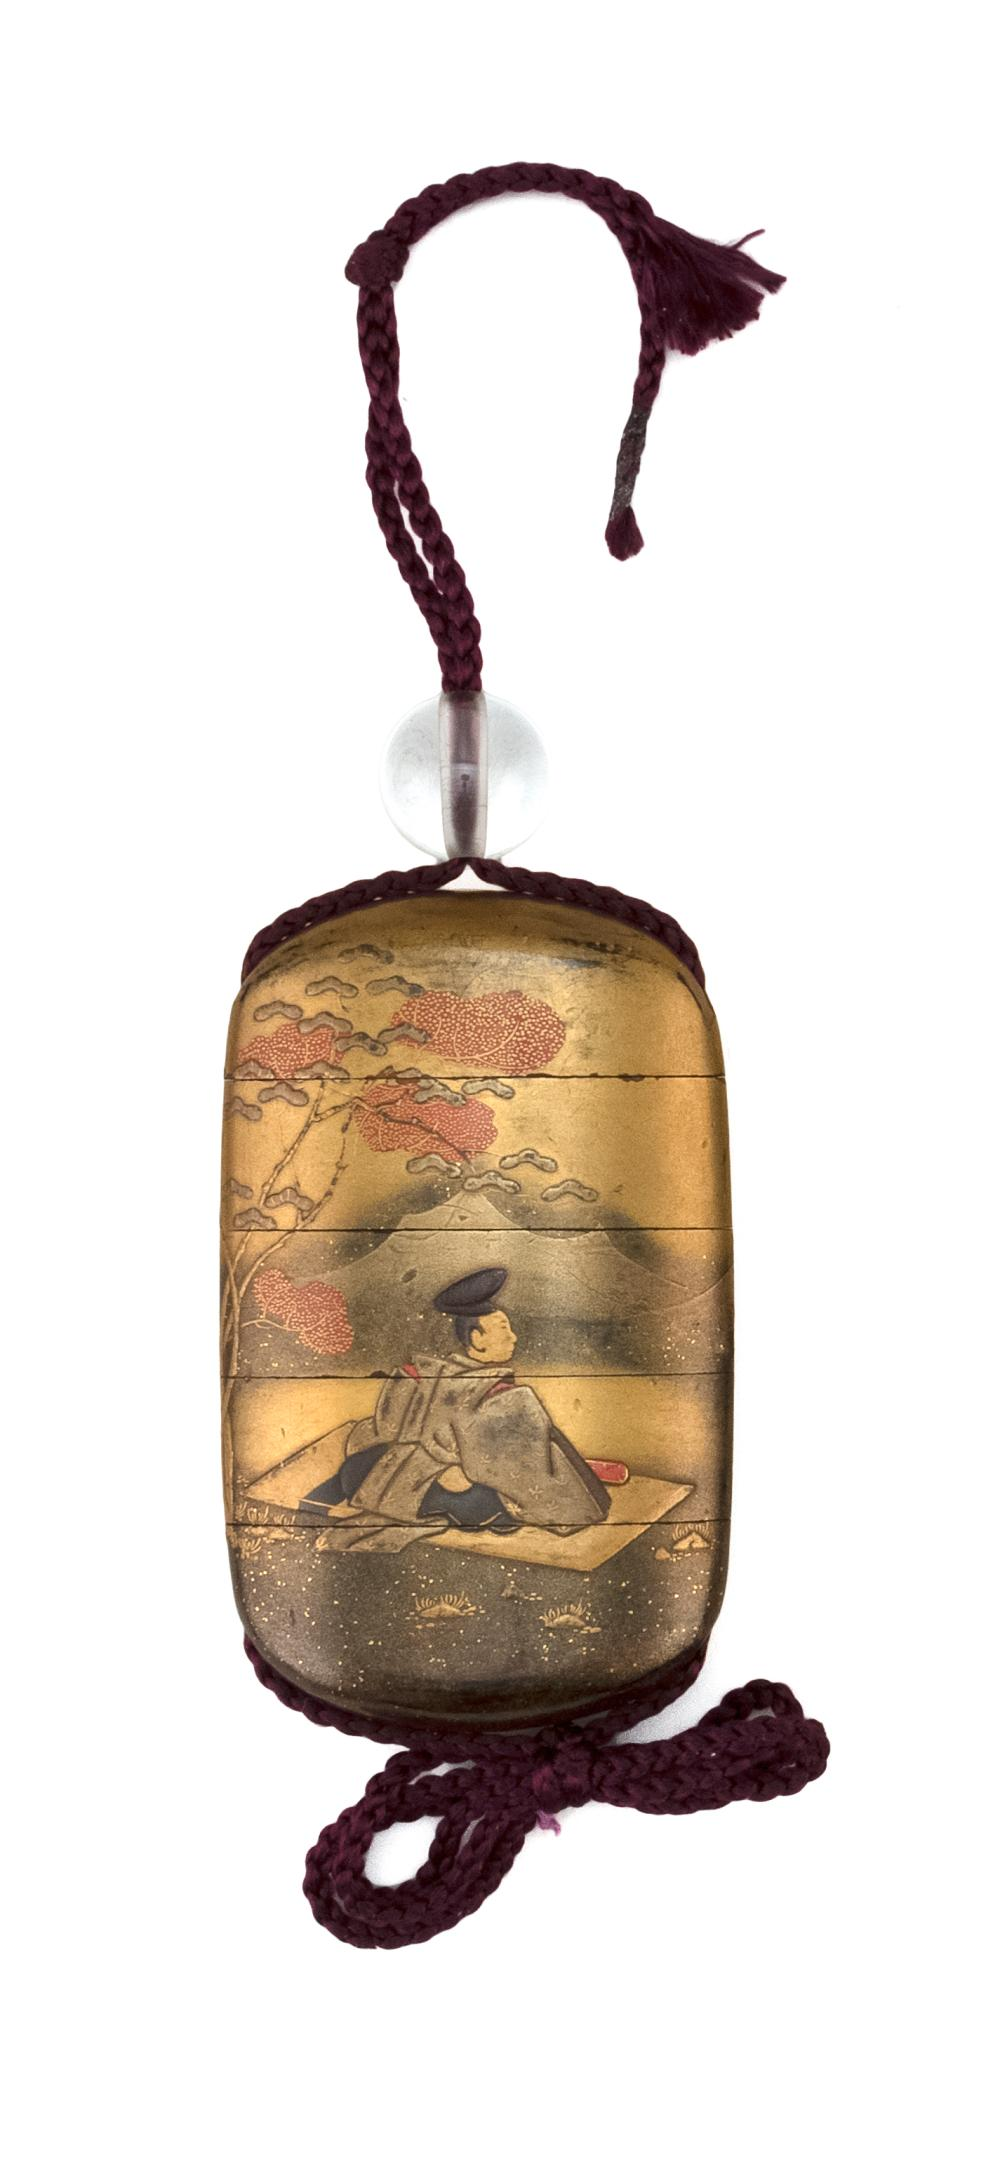 "JAPANESE GOLD LACQUER FOUR-CASE INRO Decorated with two noblemen in a fall landscape. Length 3.4"". Rock crystal ojime."